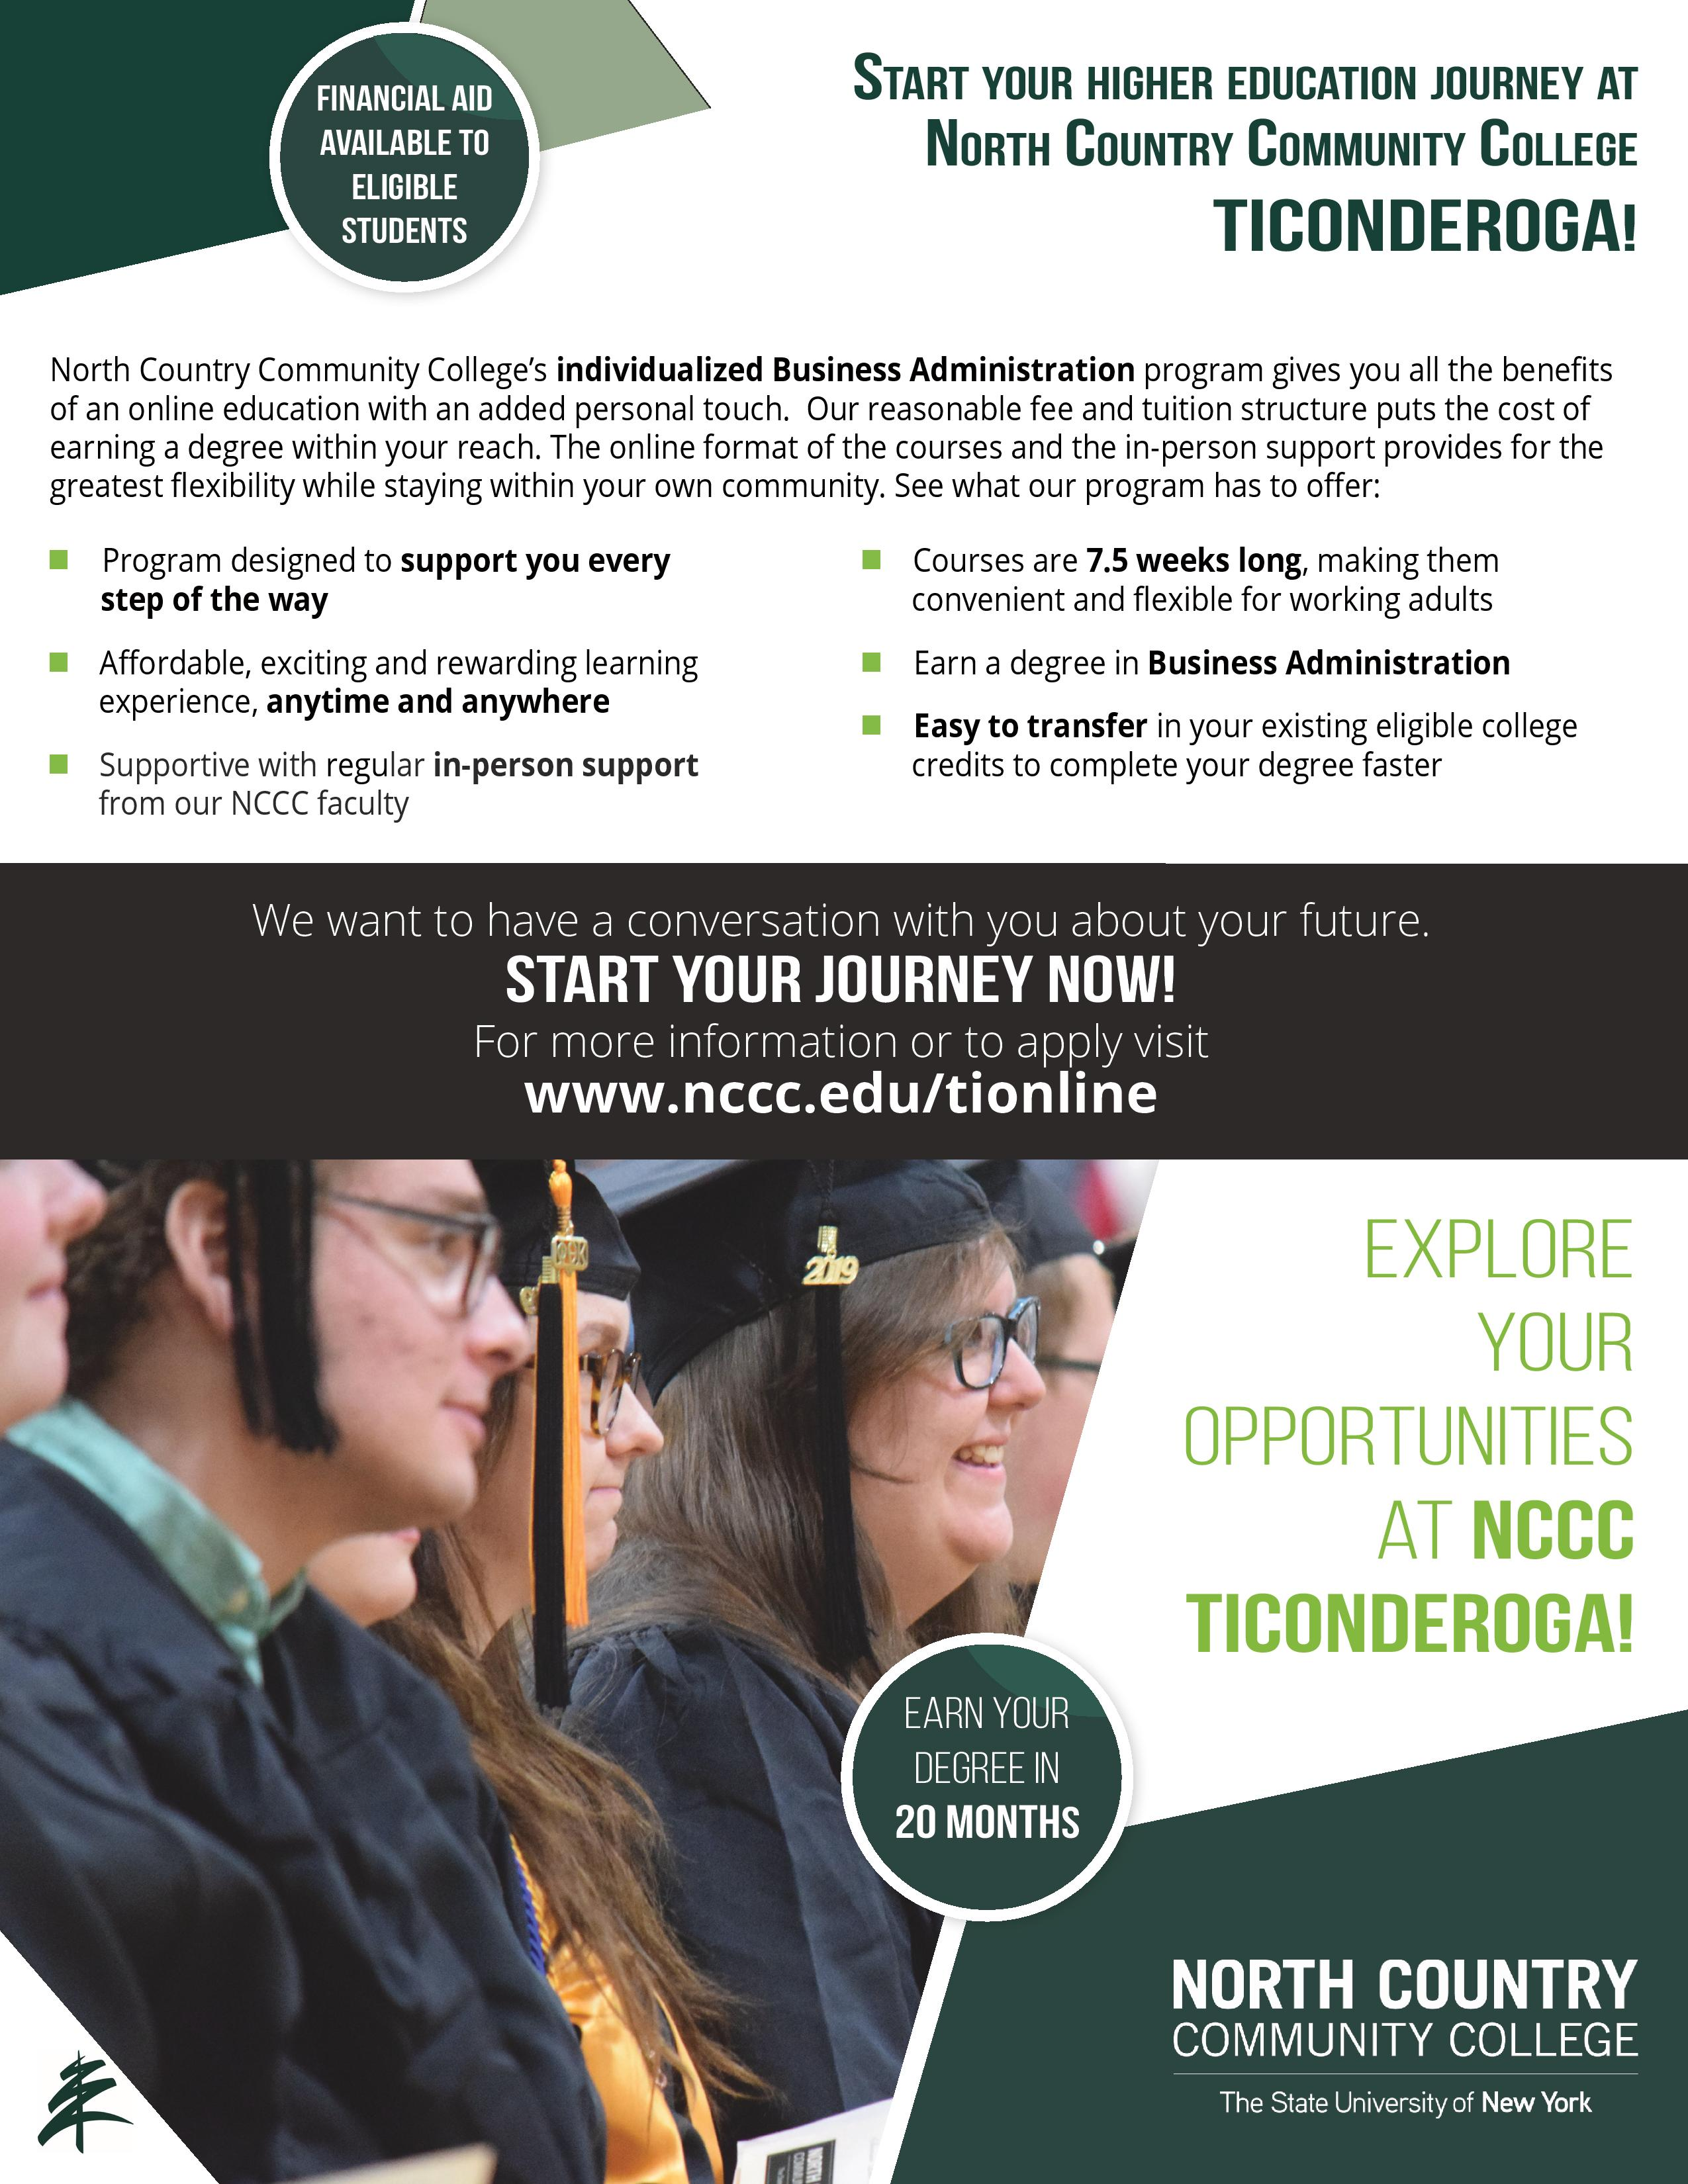 NCCC's new individualized Business Administration program